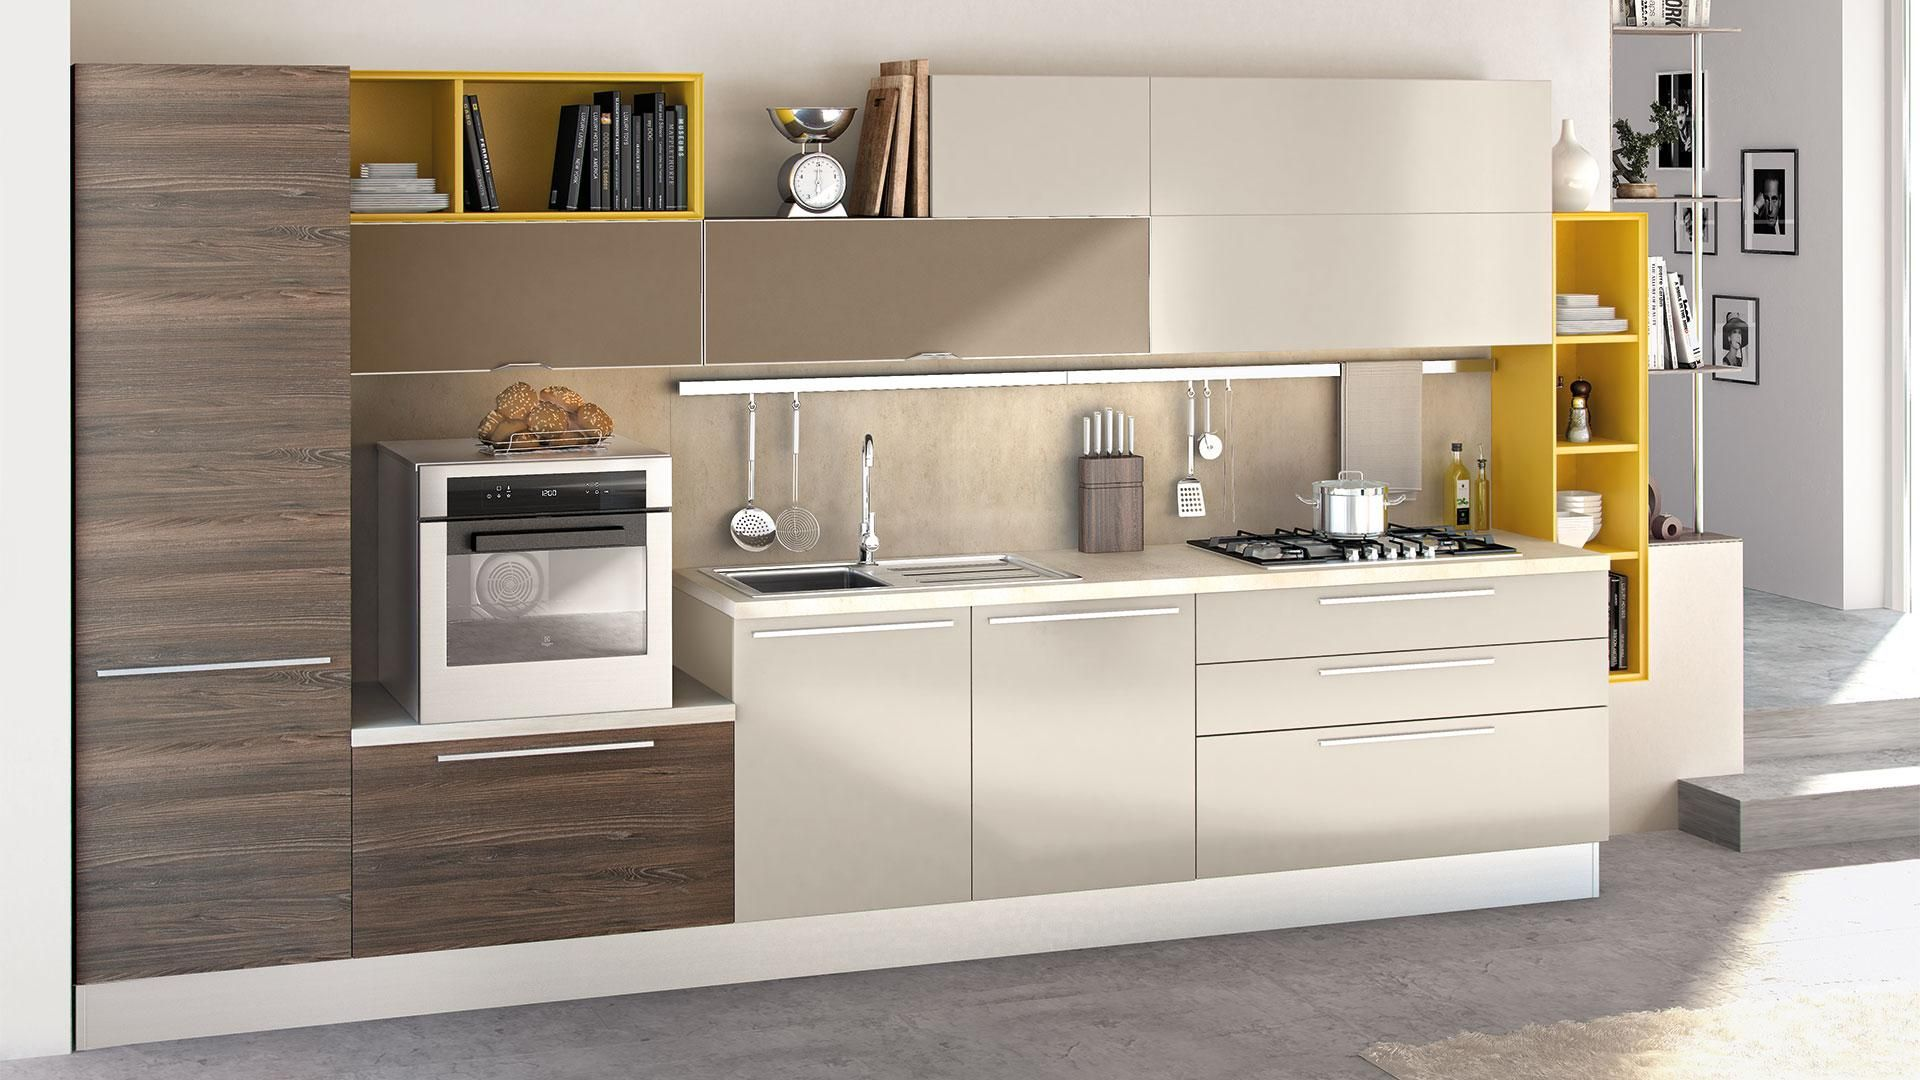 198898-noemi (With images) | Kitchen cabinet design, Kitchen ...